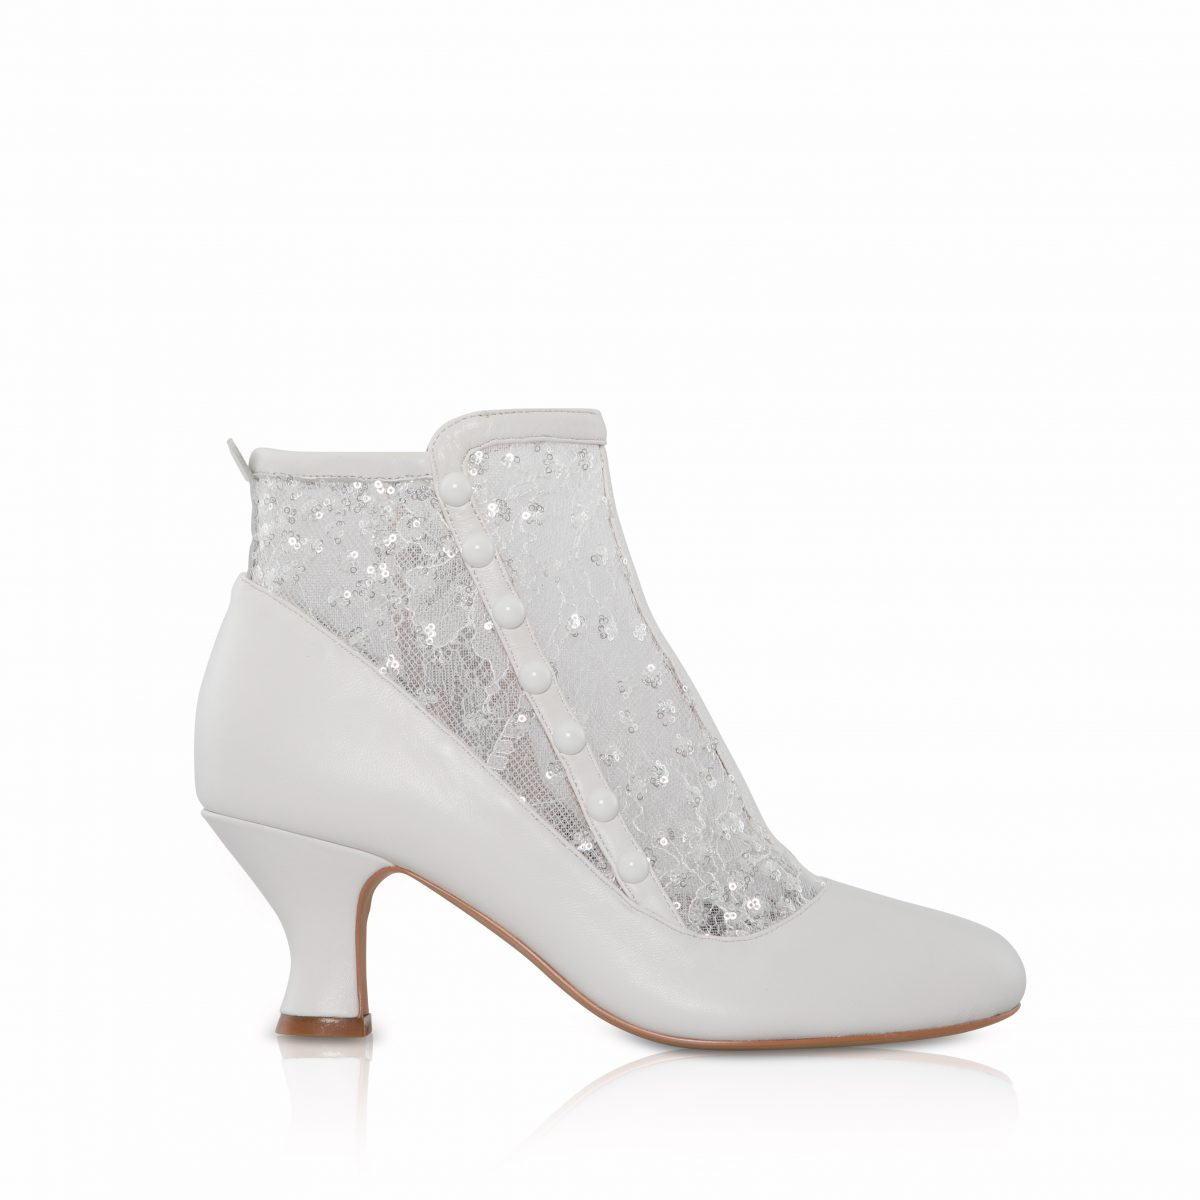 Perfect Bridal Halle Boots - Ivory Leather /Sequin Mesh 1